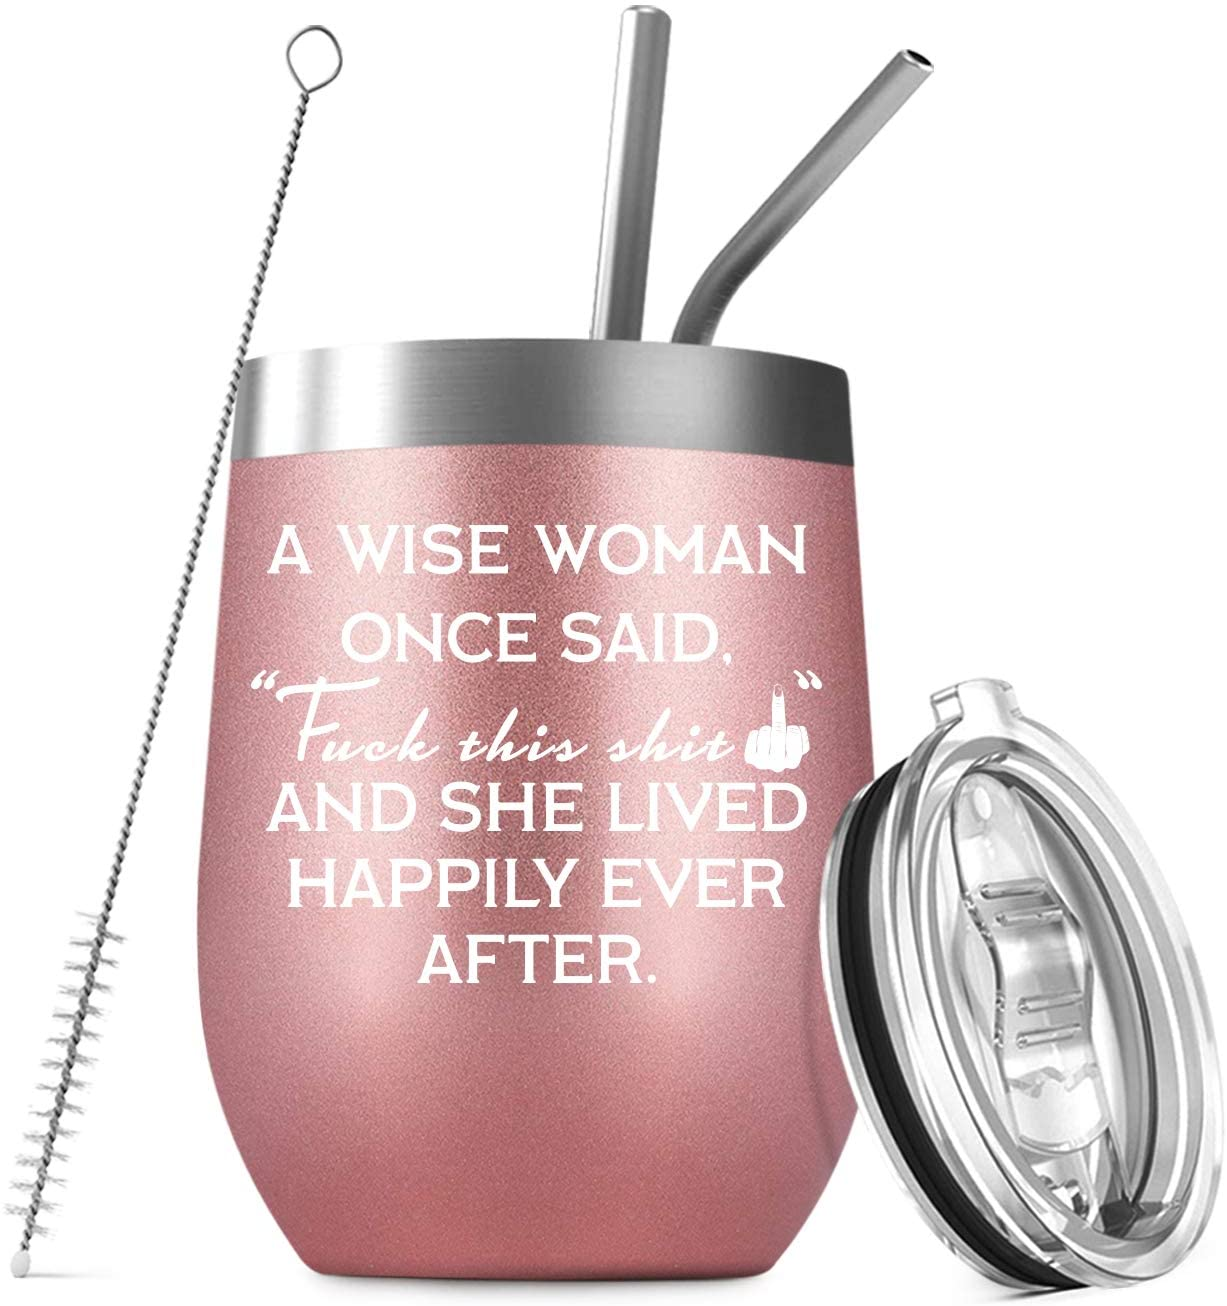 Deitybless A Wise Woman Once Said, Funny Birthday Christmas Gifts for Women, Best Friend, Sister, Coworker, Wife, Mom, Daughter, Aunt, Her 12 oz Stemless Wine Tumbler with Funny Saying